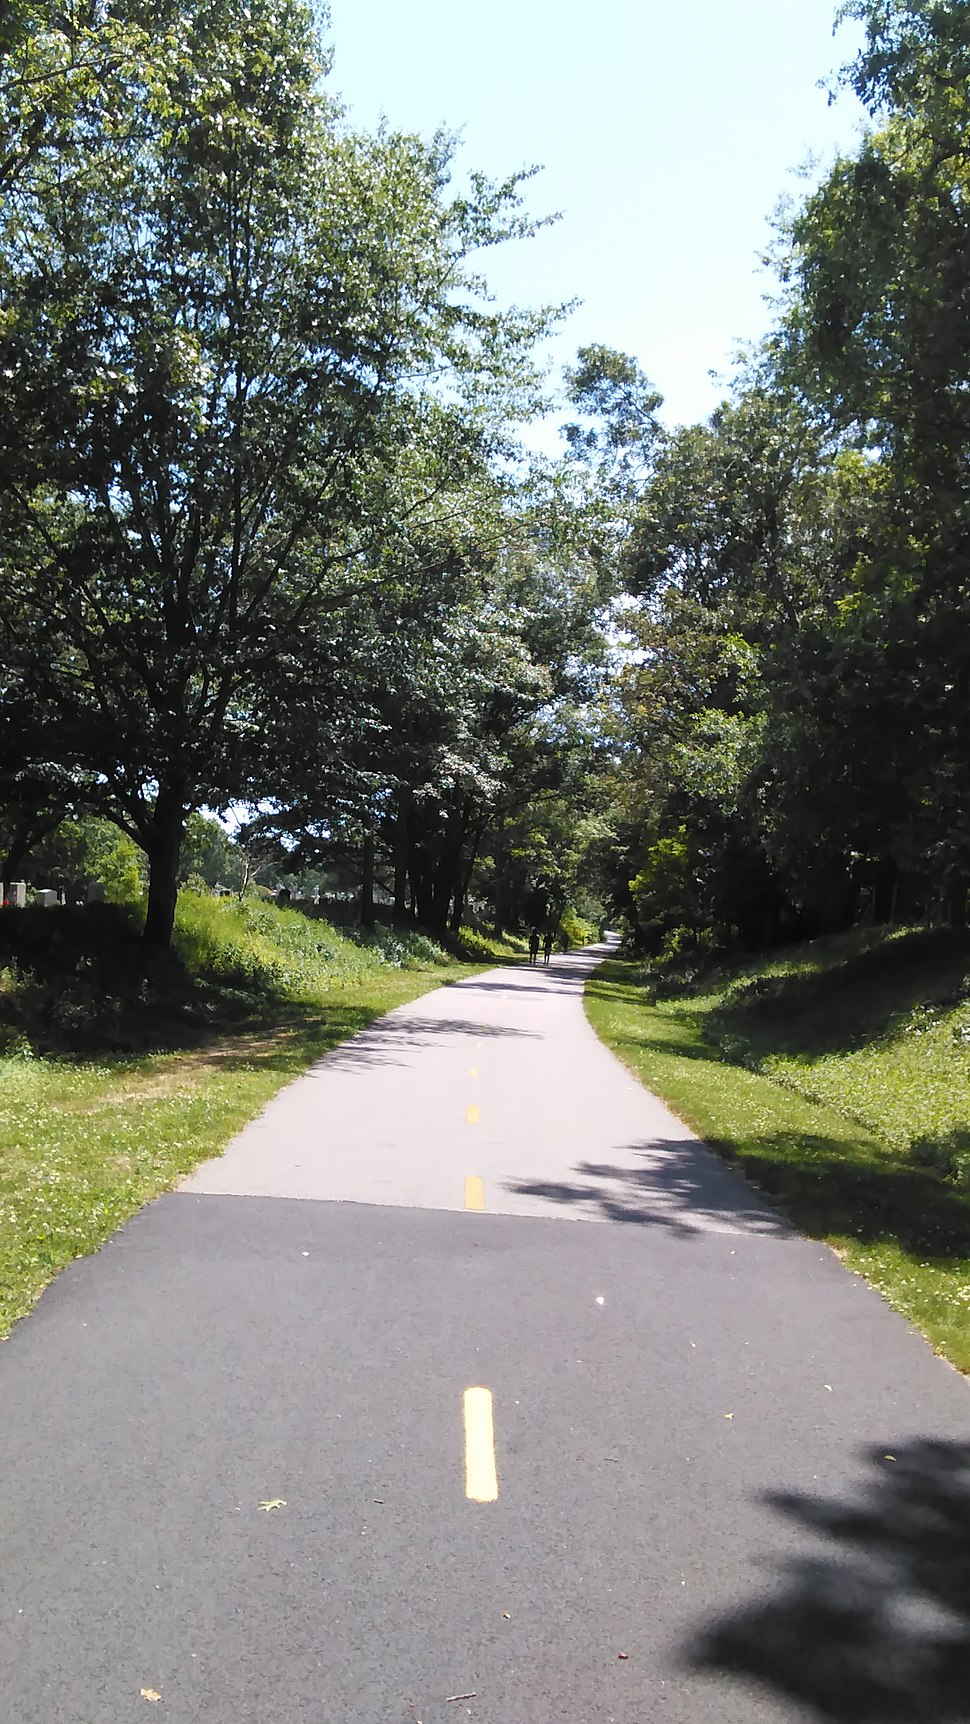 South County Bike Path in Peace Dale, June 2016